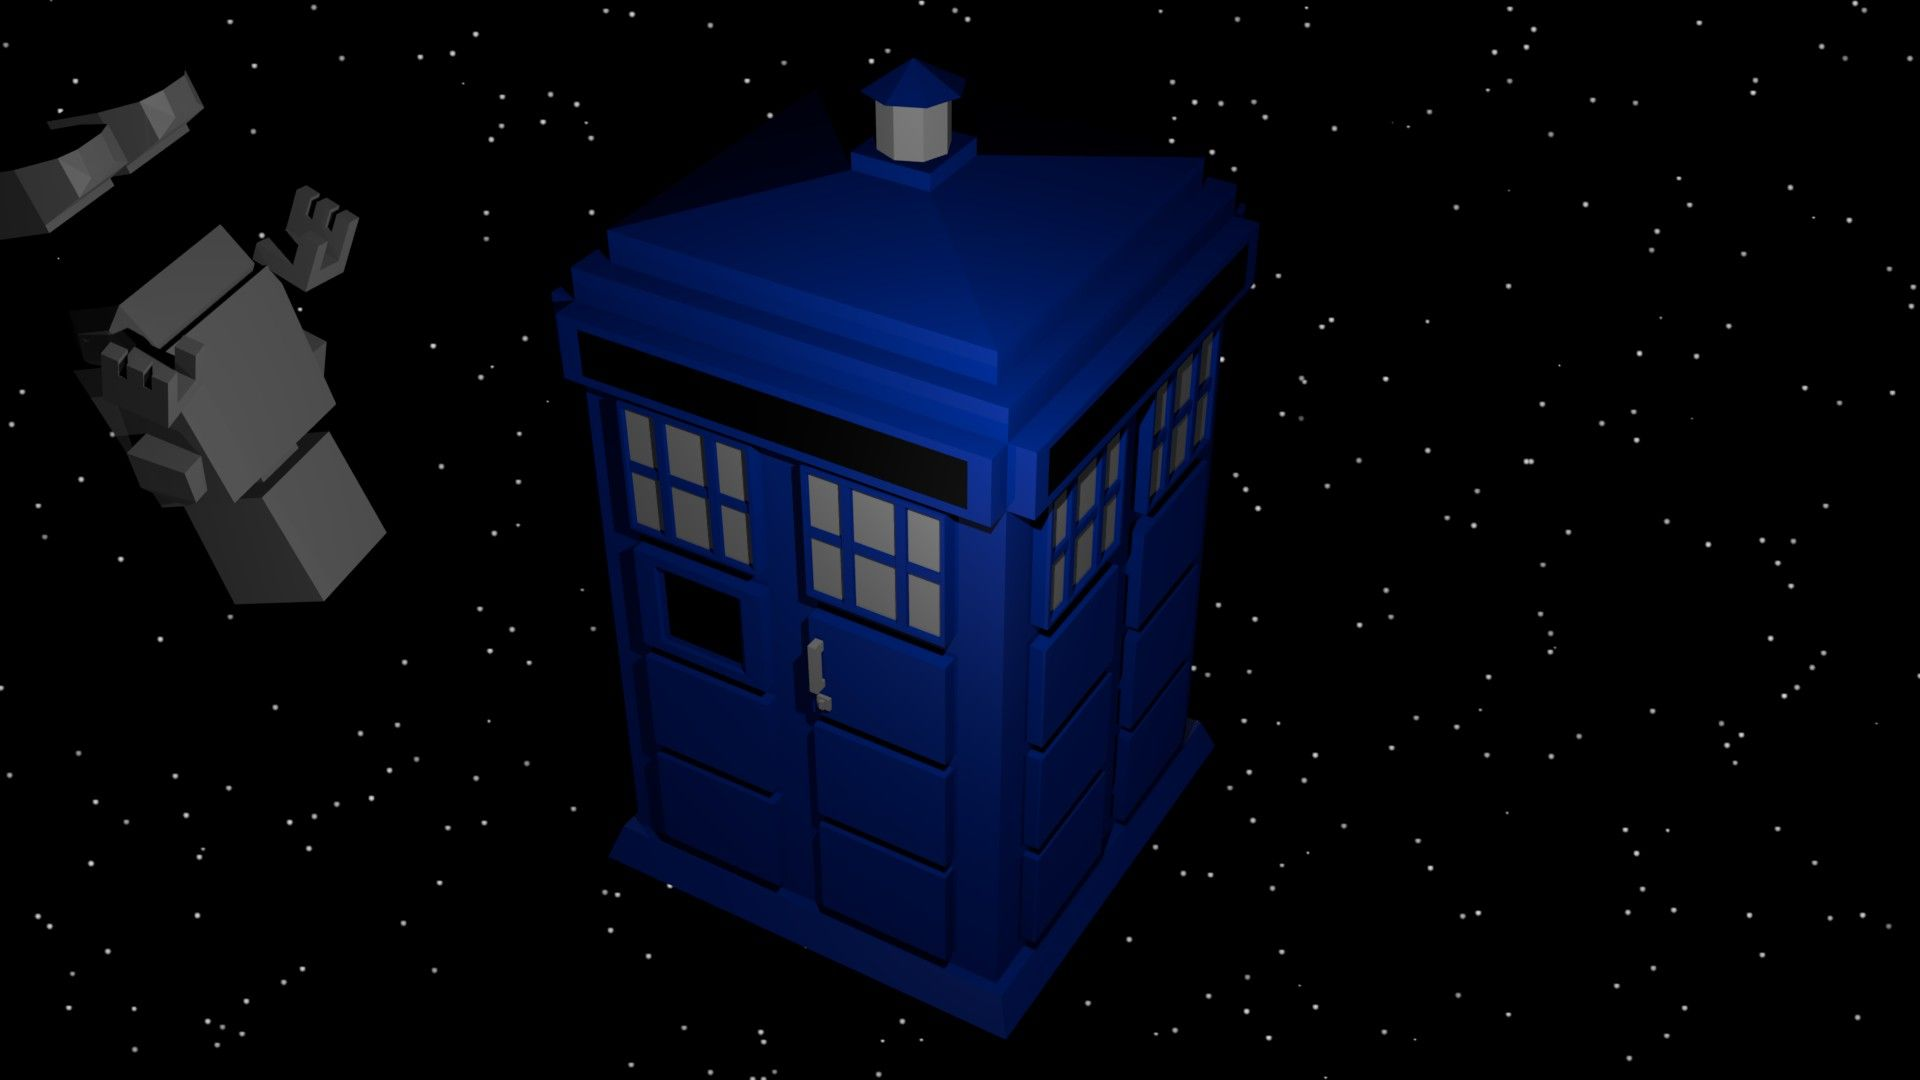 It Has The Roof Of The New Tardis, But The Black Background For The Signs L( )